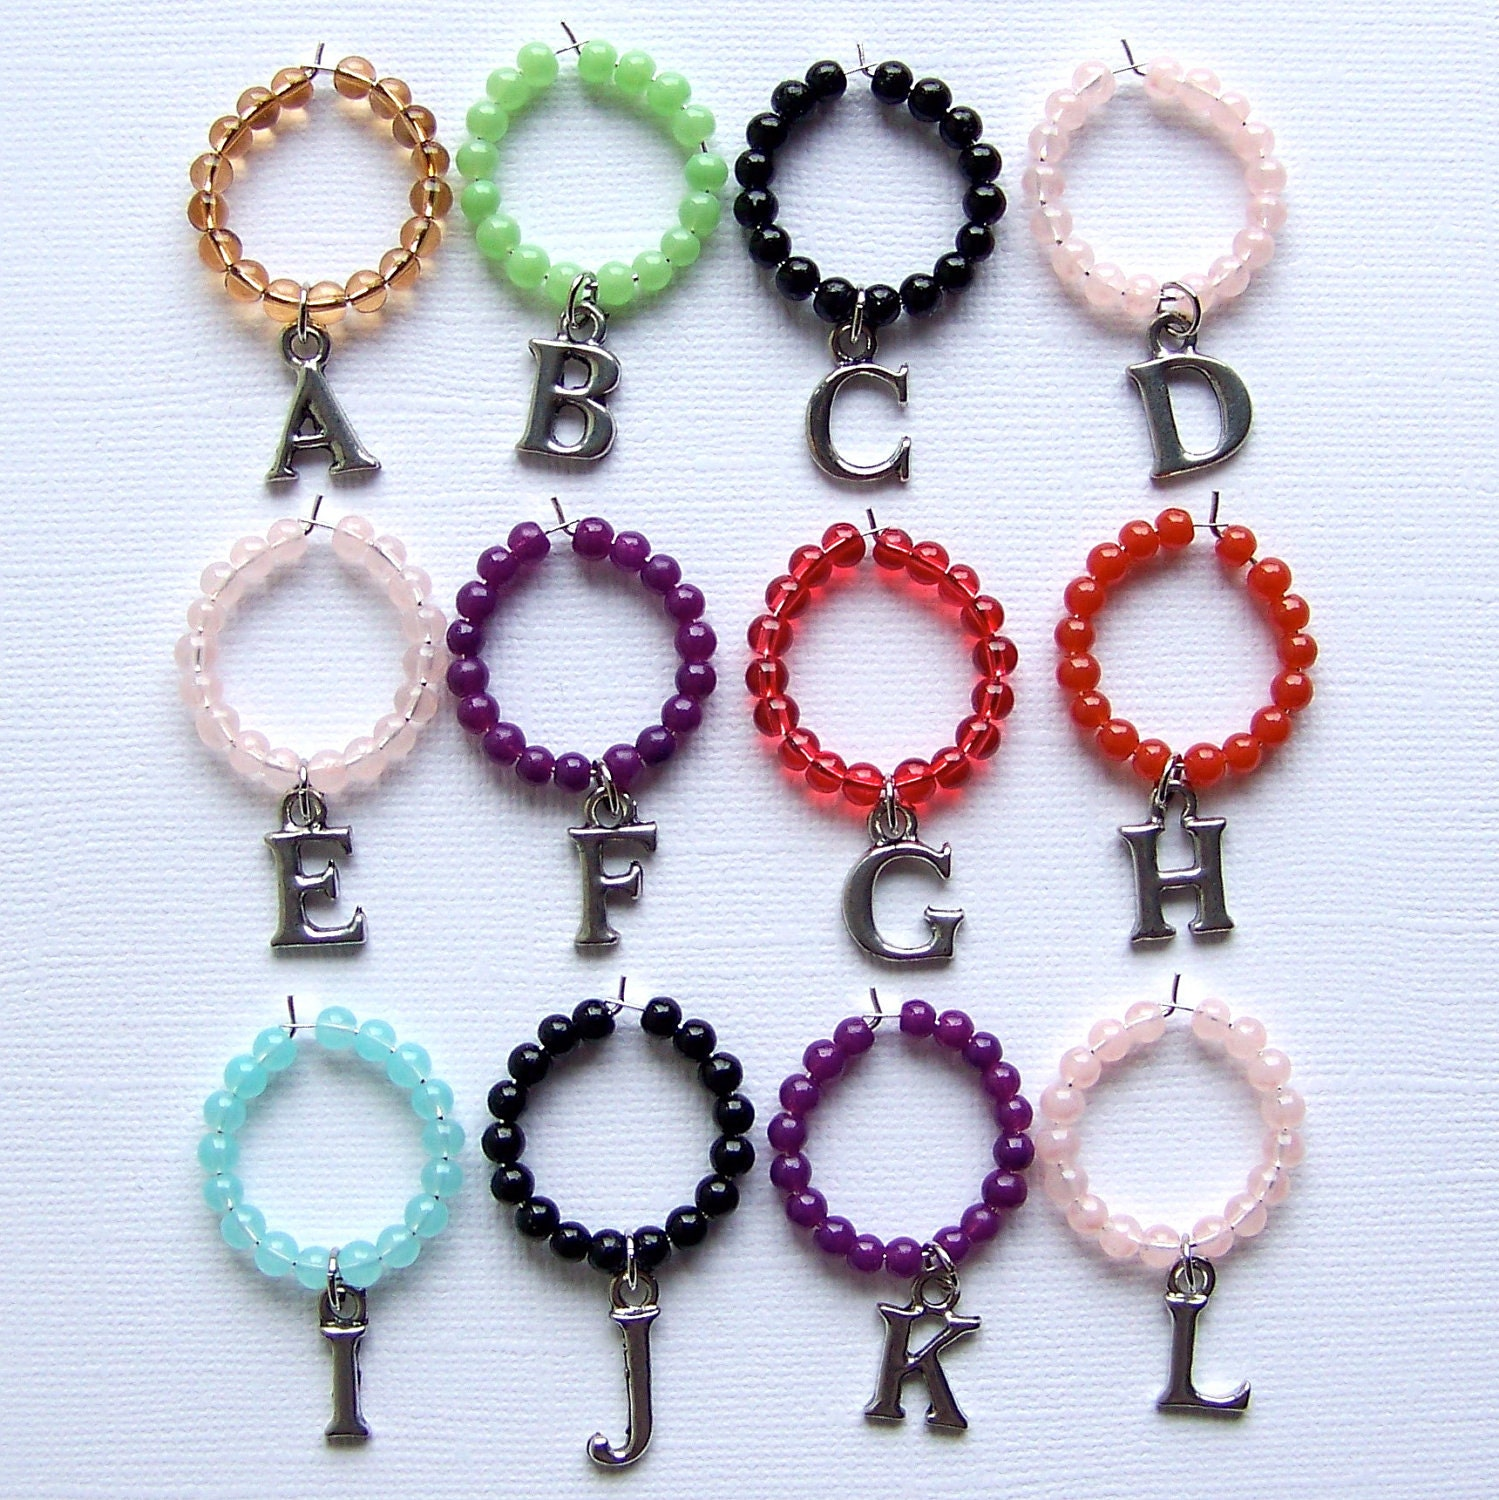 Alphabet Wine Glass Charms - Set of 6 - Your Choice of Letters